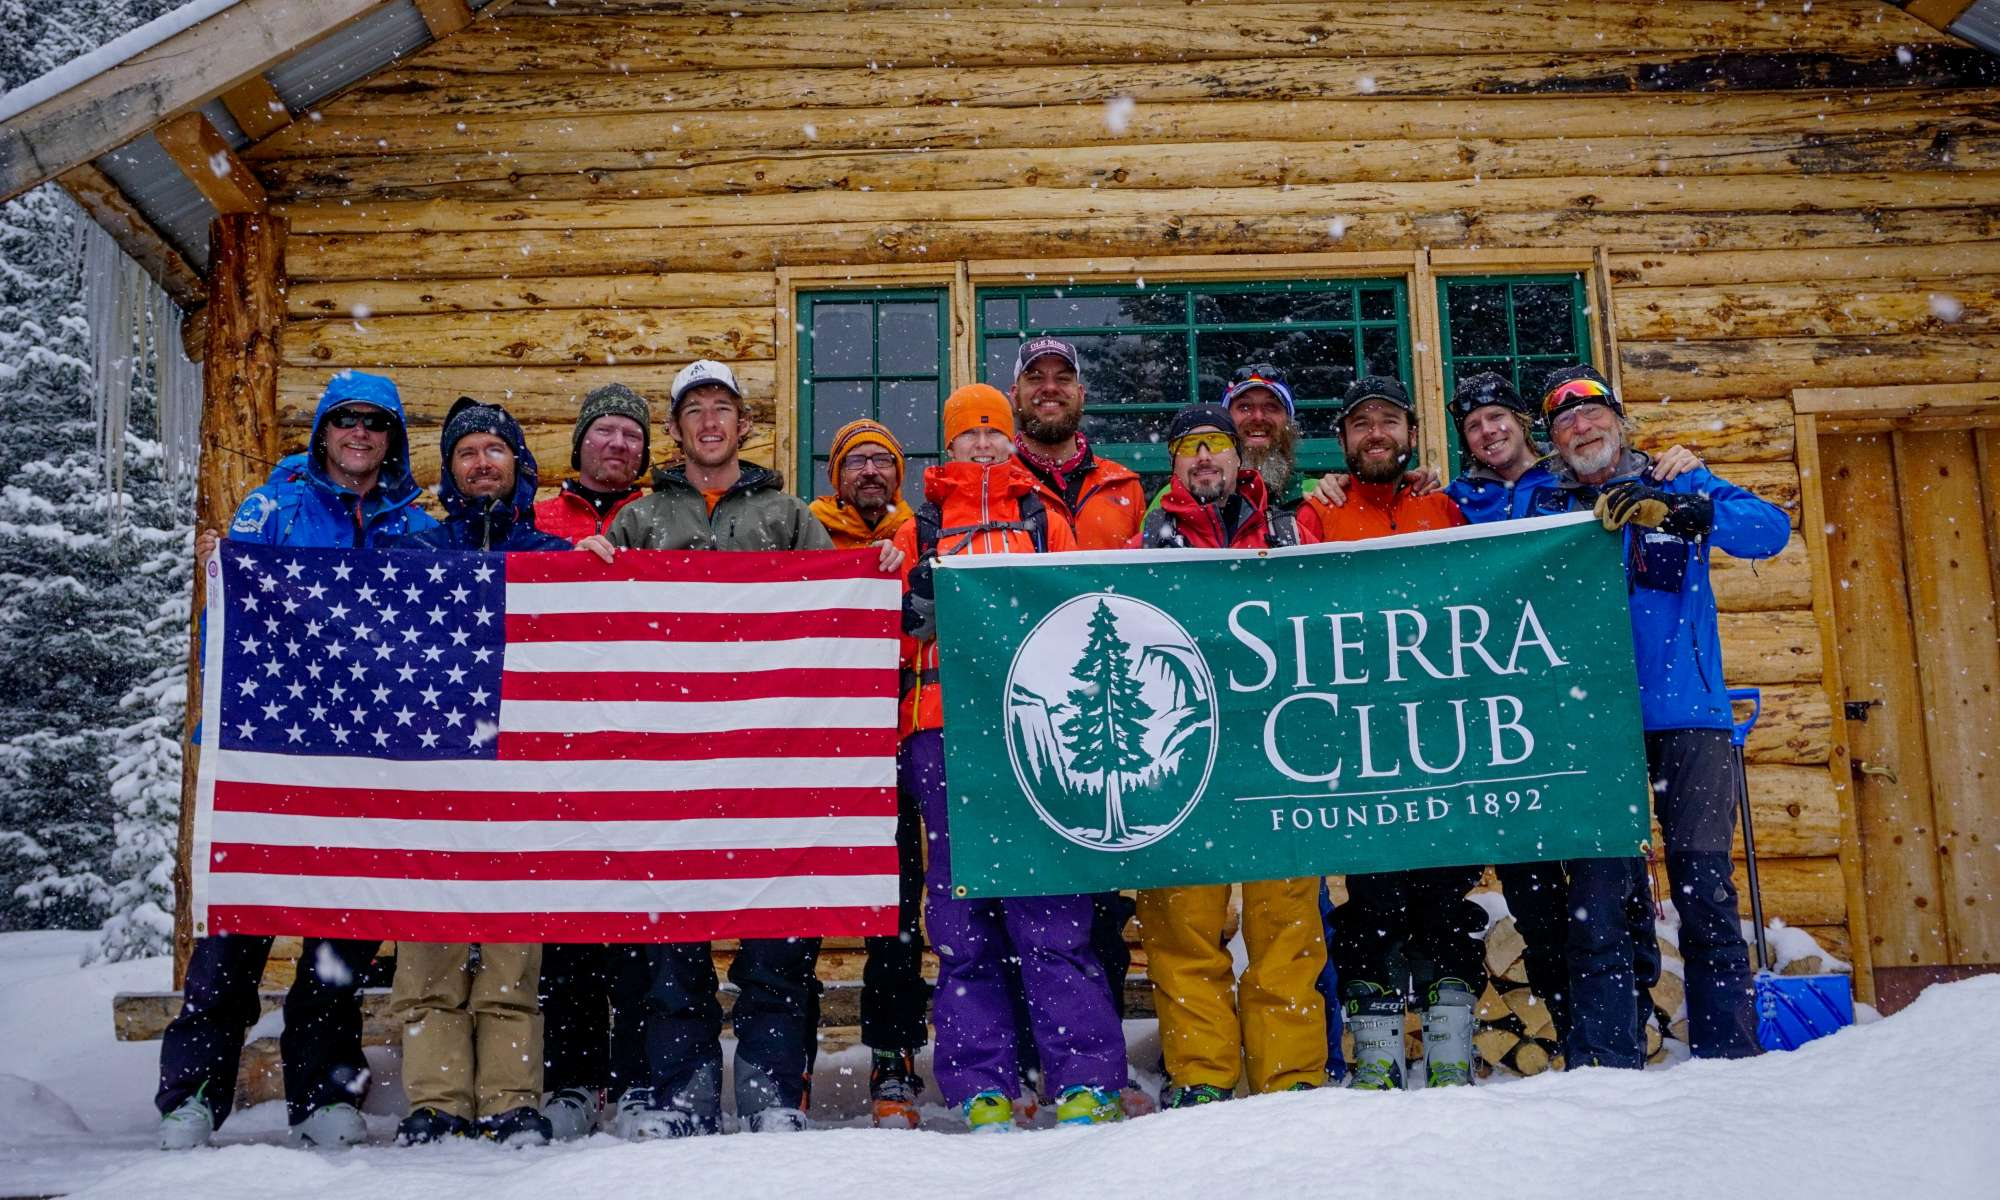 An Interview With Sierra Club's Stacy Bare On Health And the Outdoors